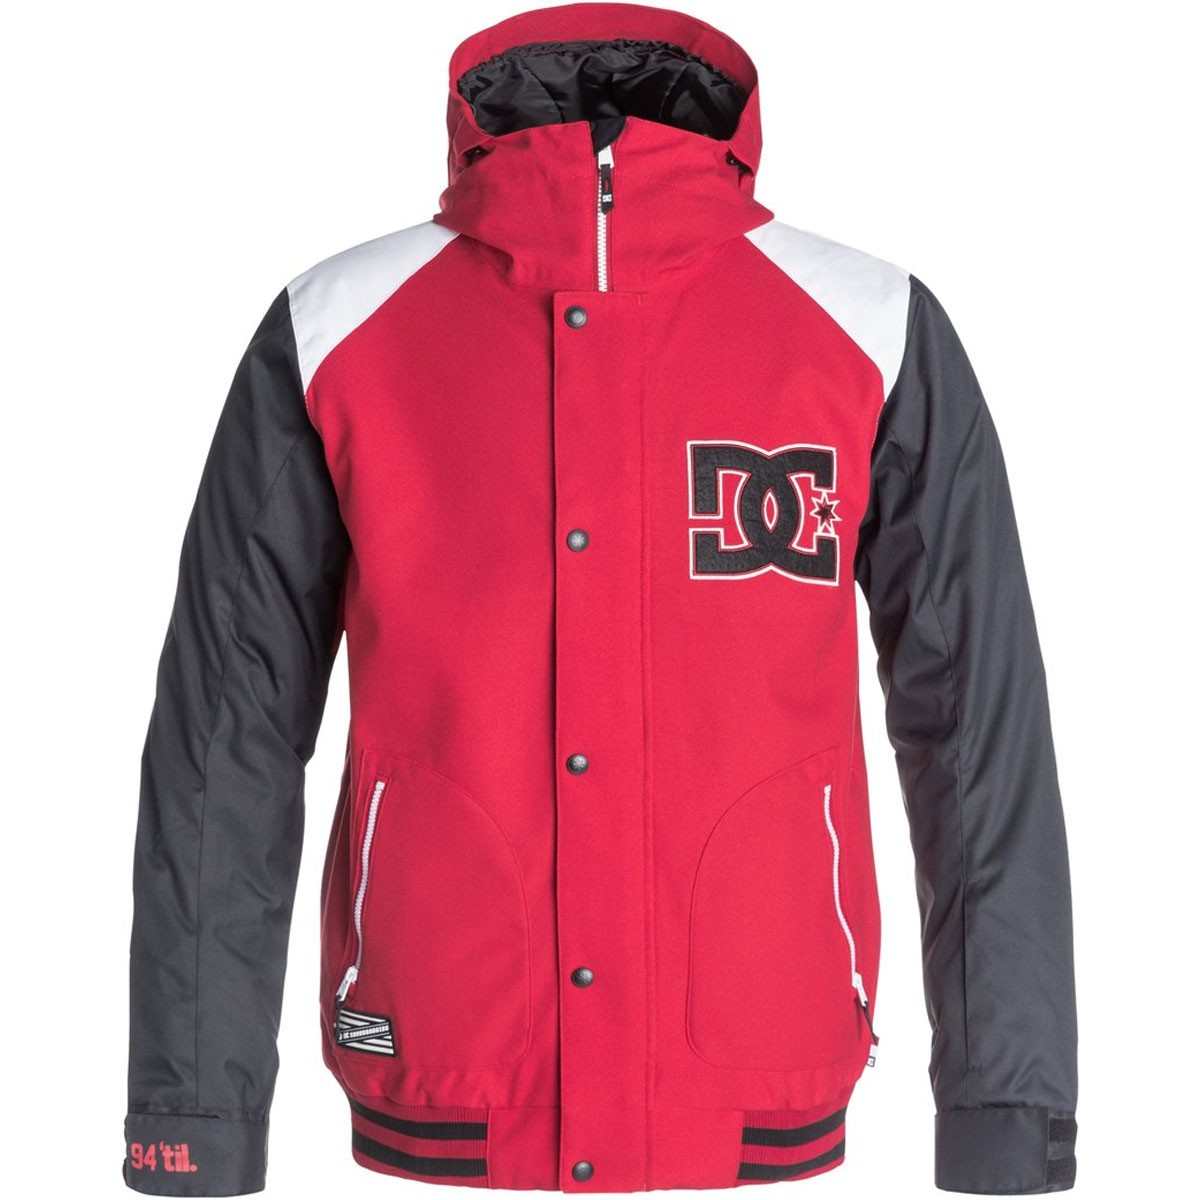 DC DCLA Snowboard Jacket - Tango Red